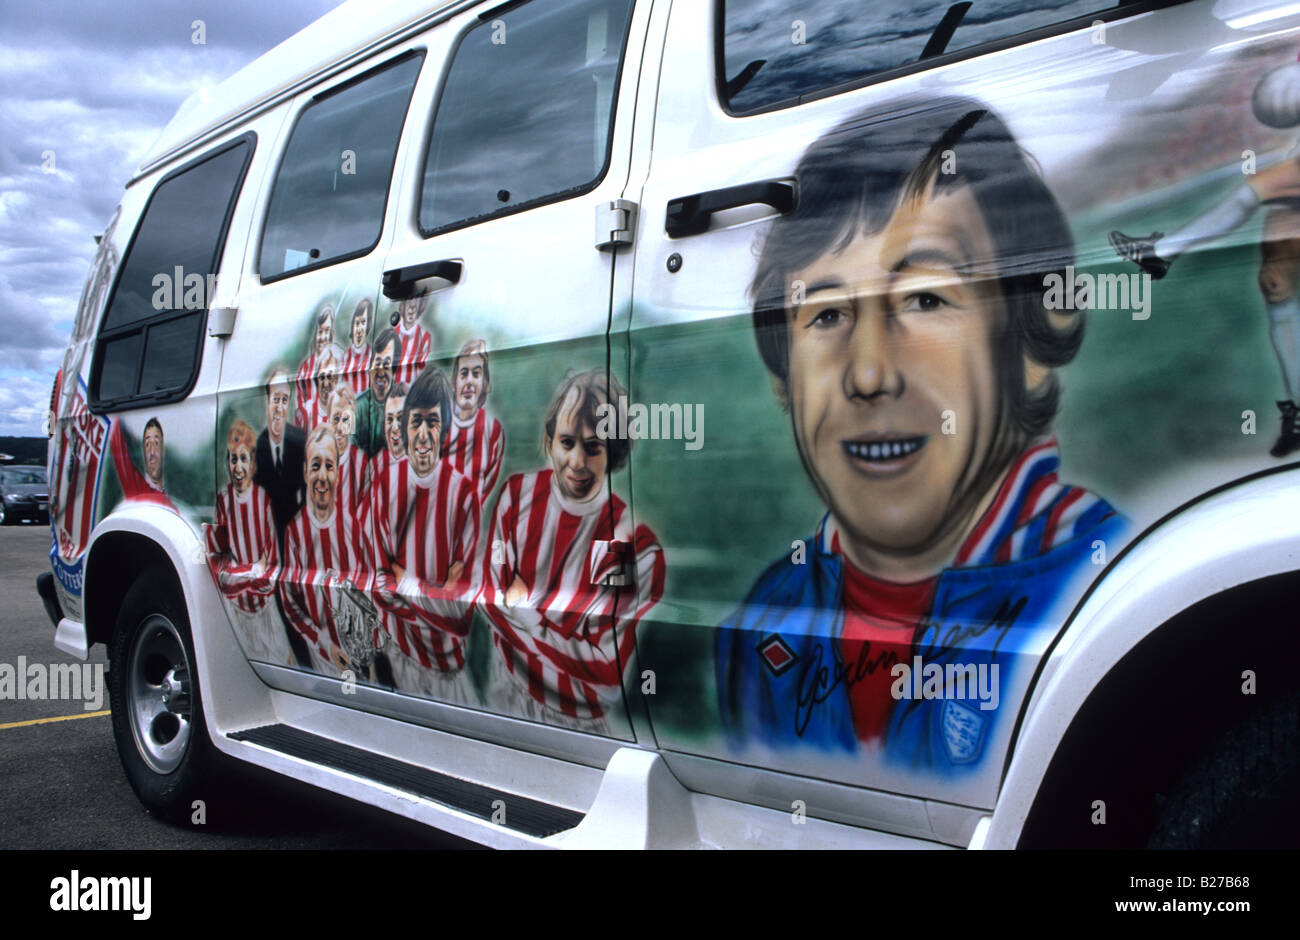 Customised Stoke City Supporters Painted Van At The Britannia Stadium - Stock Image